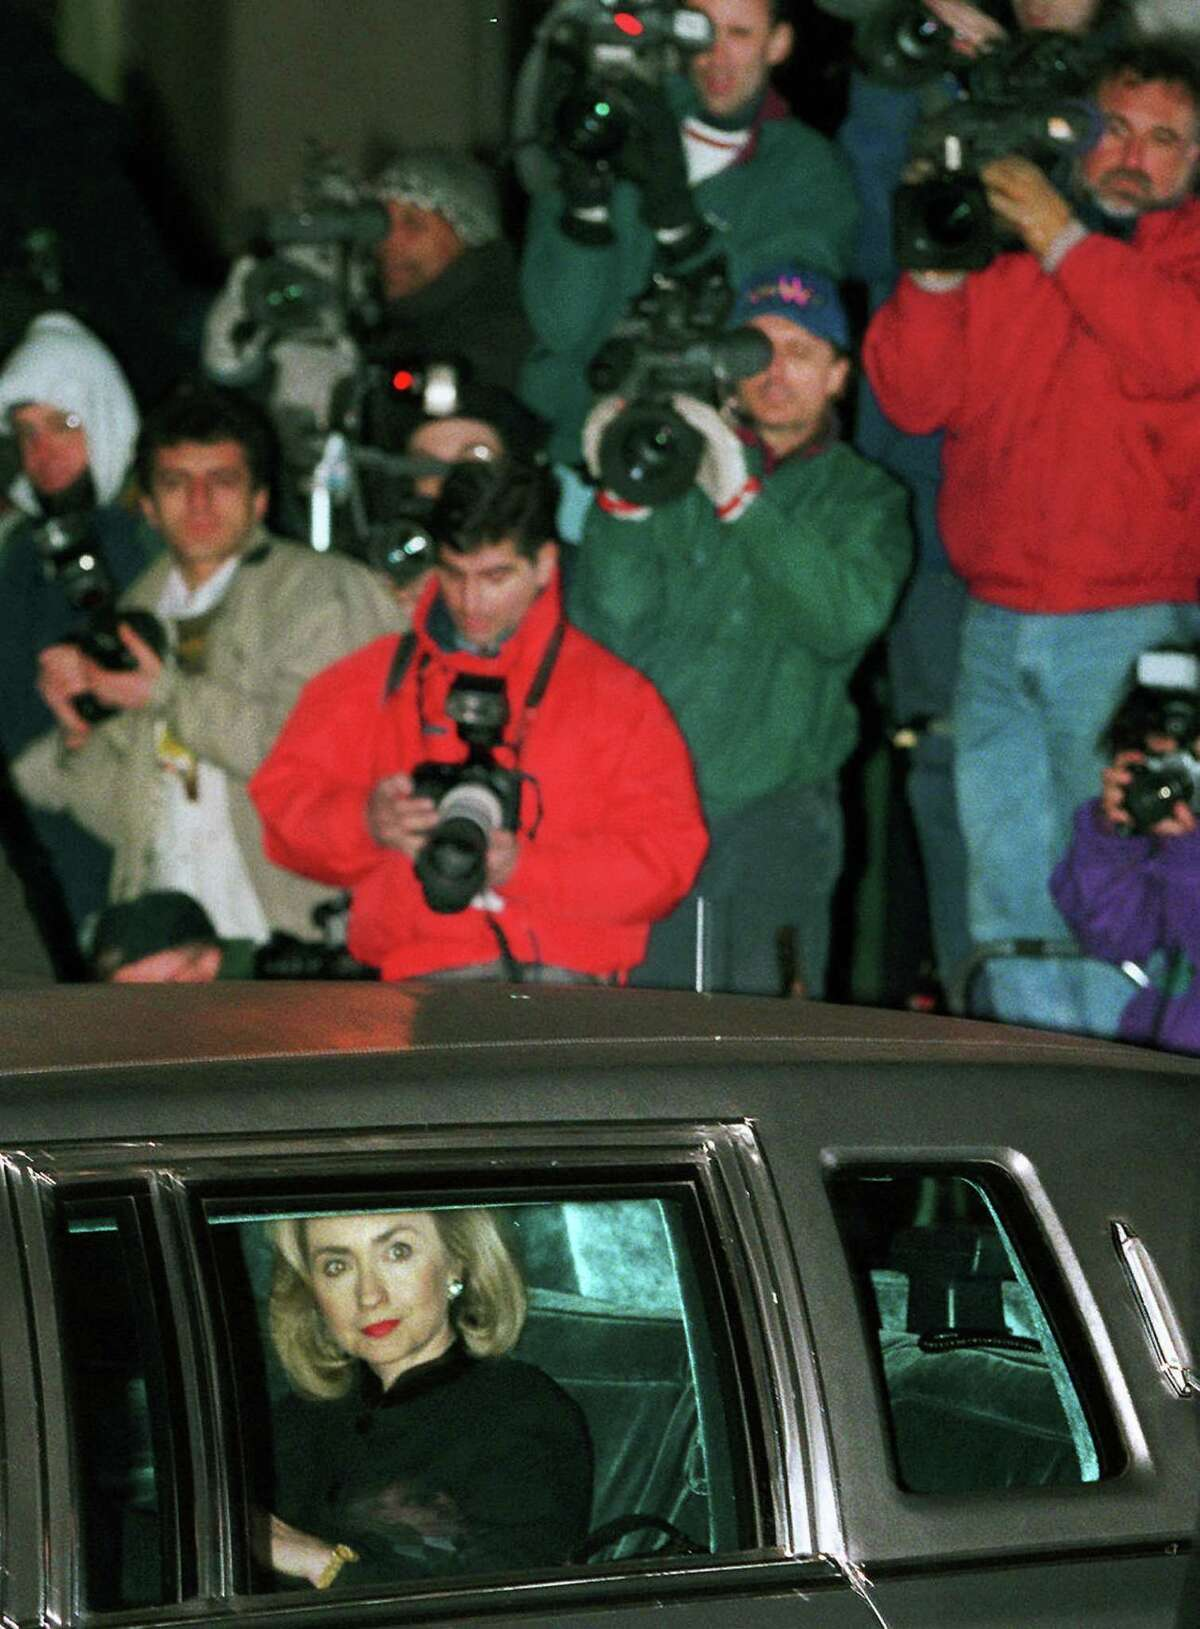 FILE - In this Jan. 26, 1996 file photo, then-first lady Hillary Rodham Clinton leaves U.S. District Court in Washington for the White House after testifying about four hours in secret to a grand jury investigating Whitewater. Once again, Hillary Rodham Clinton did it her way, and it could cost her. Clintonís decision to eschew government email and use her own private server as secretary of state is raising questions about secrecy, security and the law _ including whether she might have deleted important messages tapped into her ubiquitous Blackberry instead of preserving them for public scrutiny and history. At the least, the controversy is a bump on her unprecedented path from first lady to presumed presidential contender. (AP Photo/Mark Wilson, File)